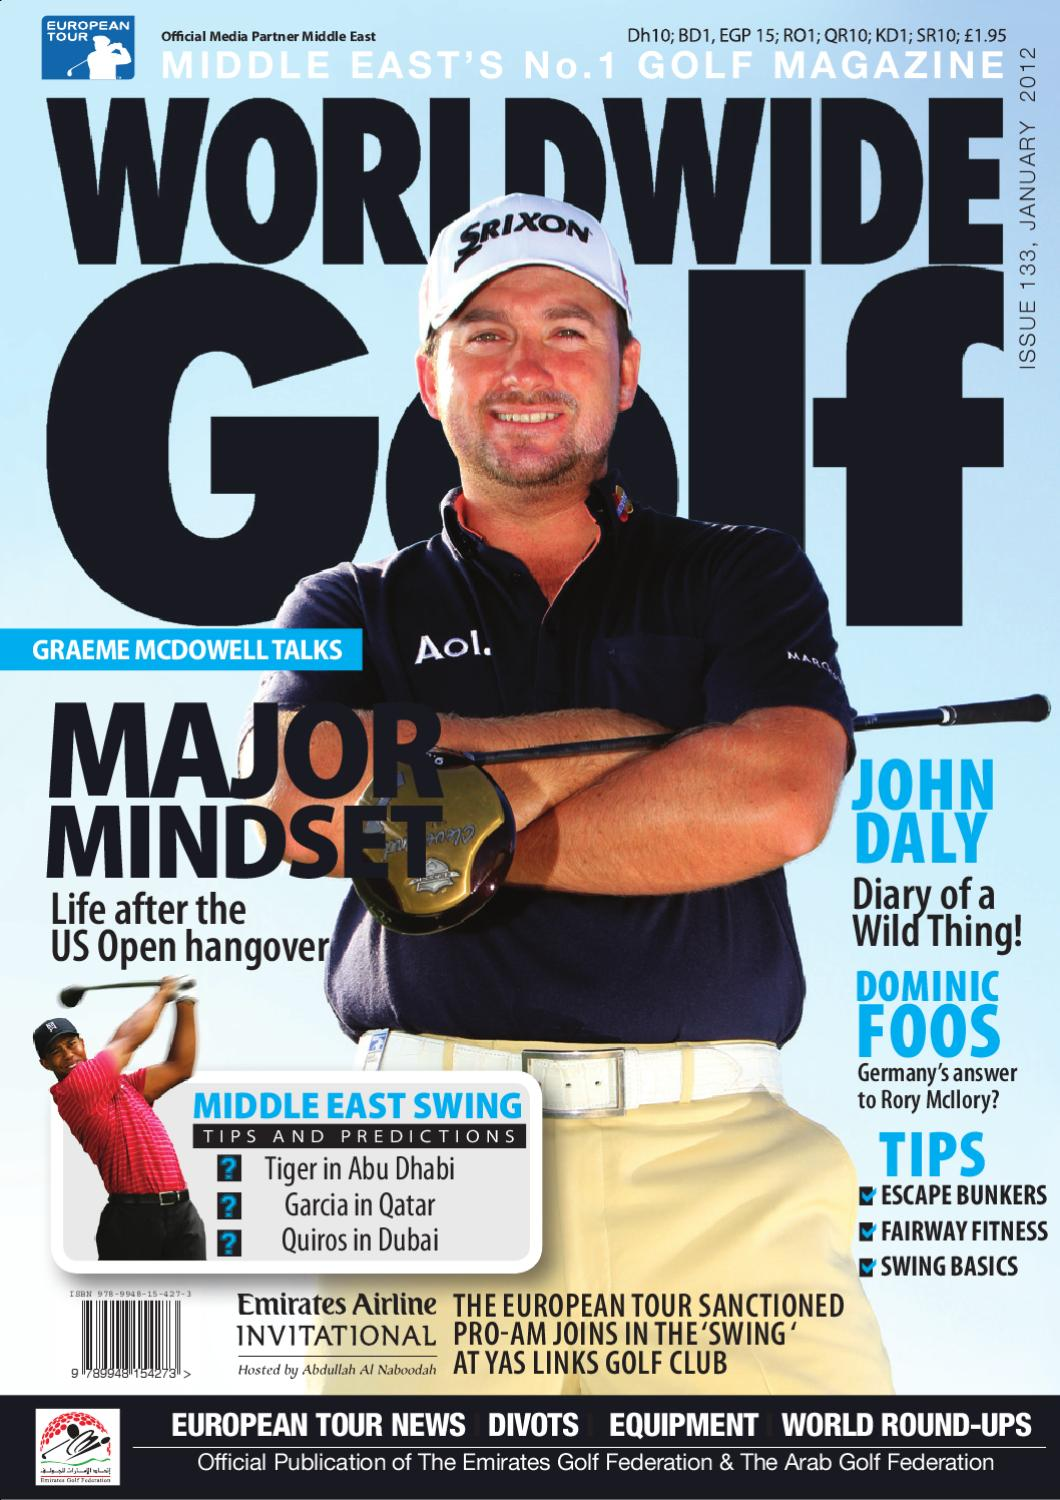 69de4b6ca Worldwide Golf January 2012 Middle Number 1 Golf Magazine by WSP ...